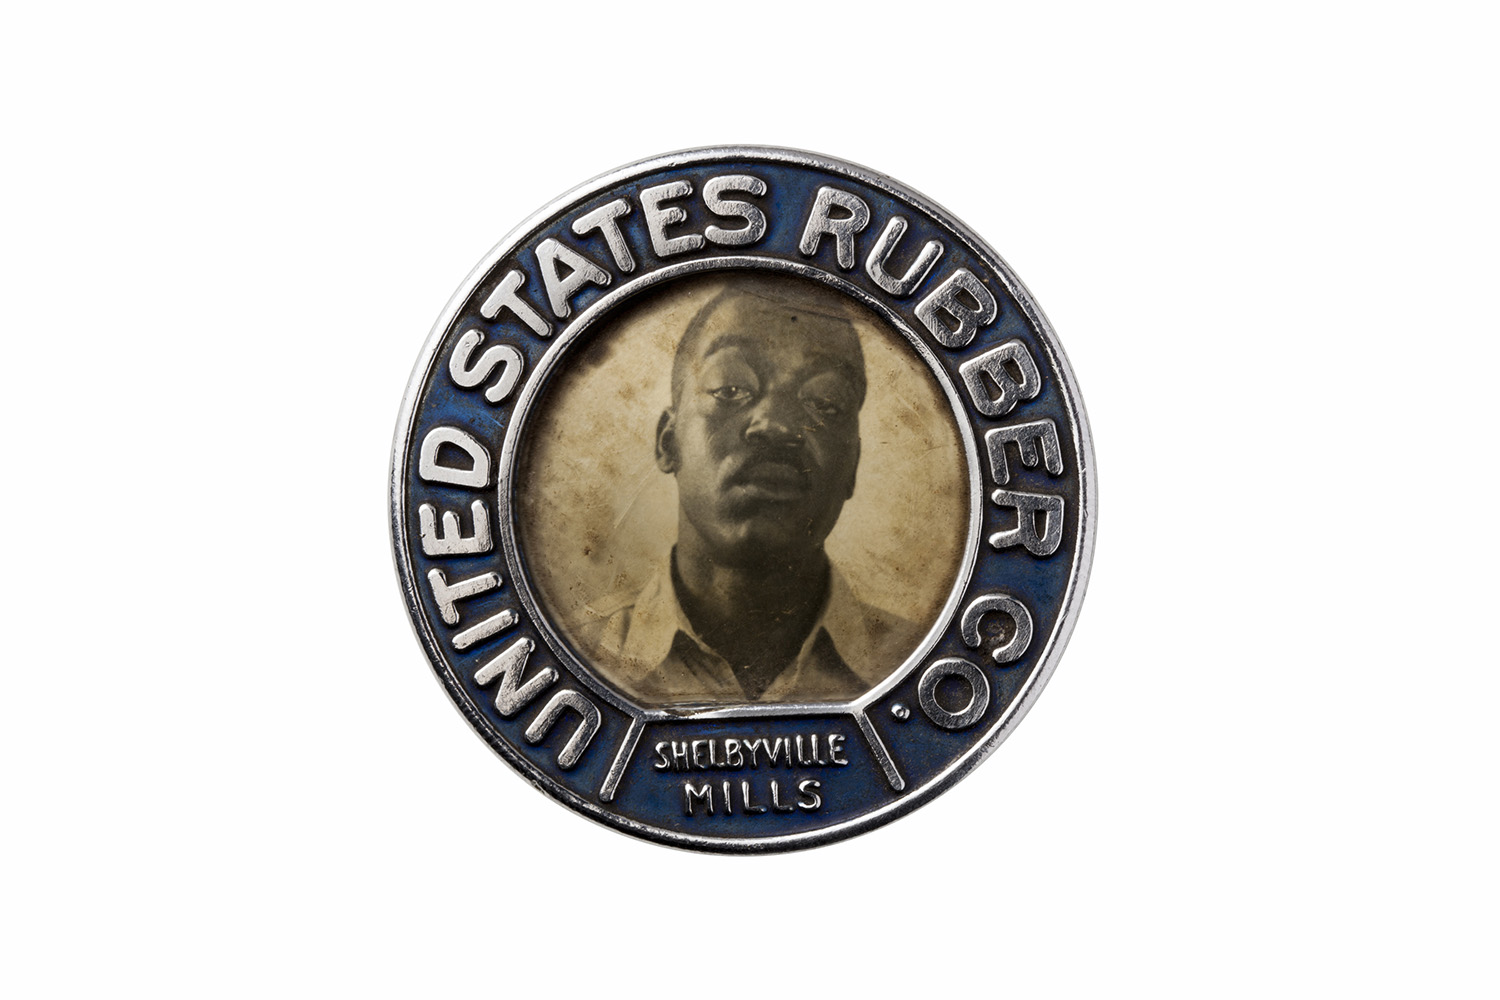 The ID badge of an employee at the United States Rubber Co.